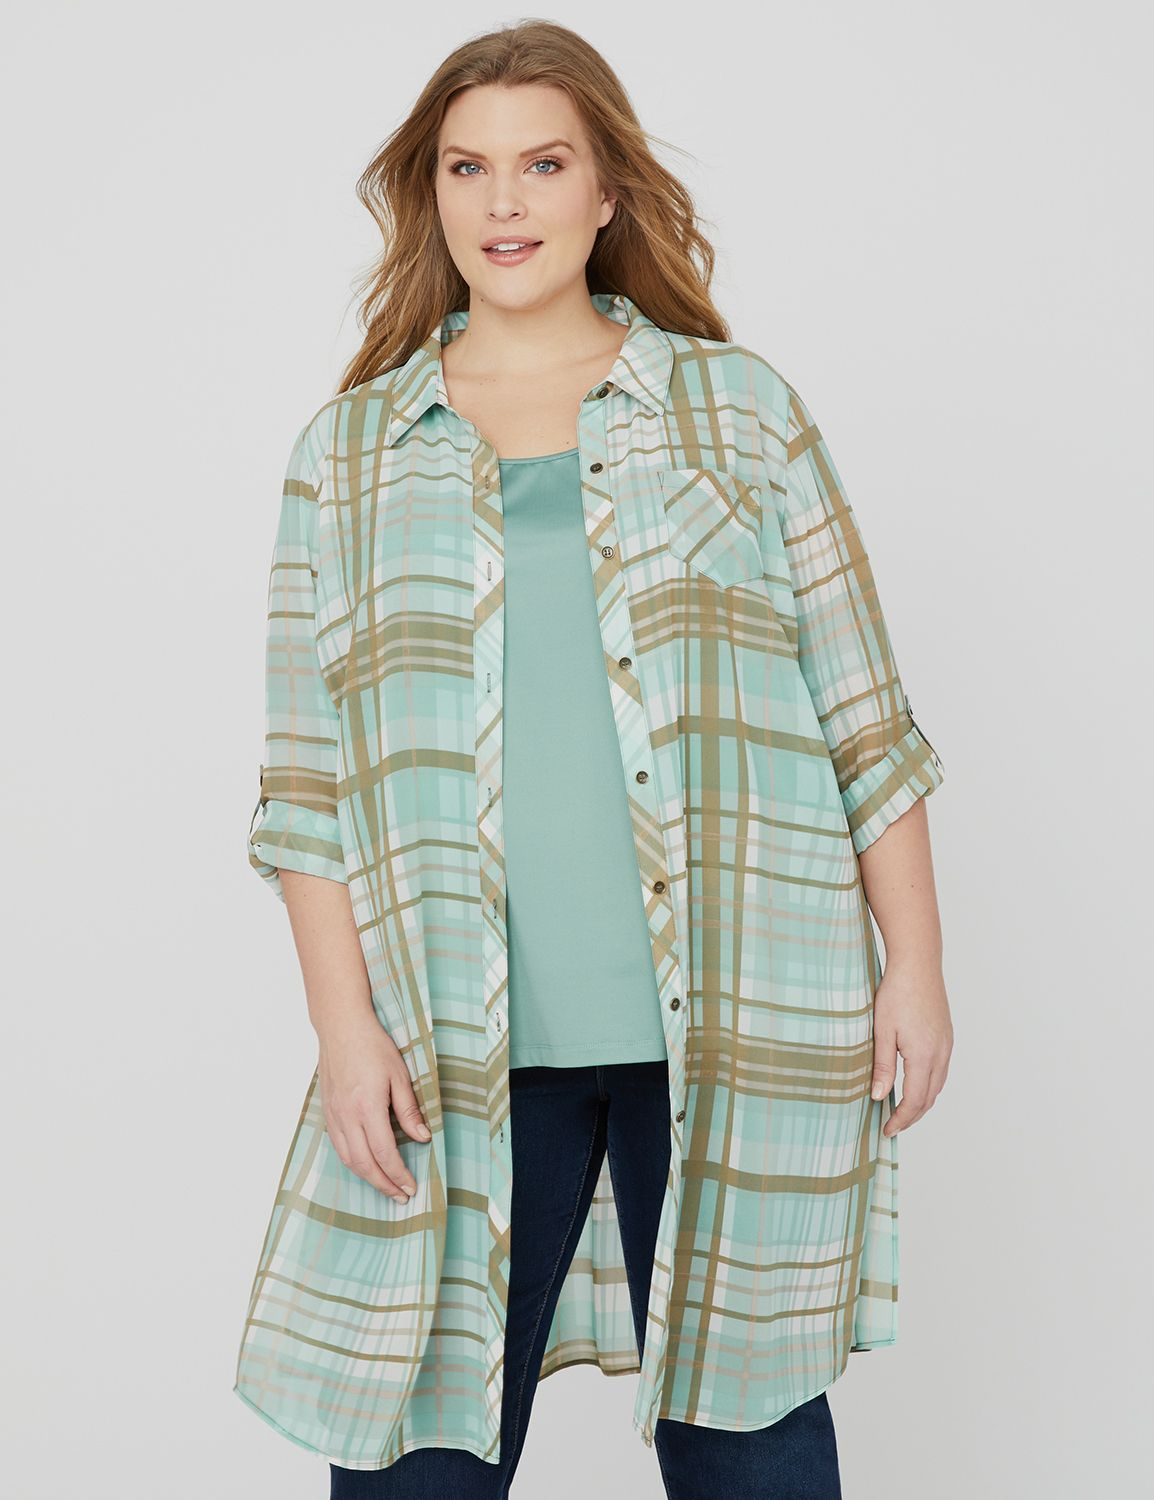 Riverwalk Plaid Duster 1081590-1091388 Long Roll 3Q Slv Bu MP-300103563